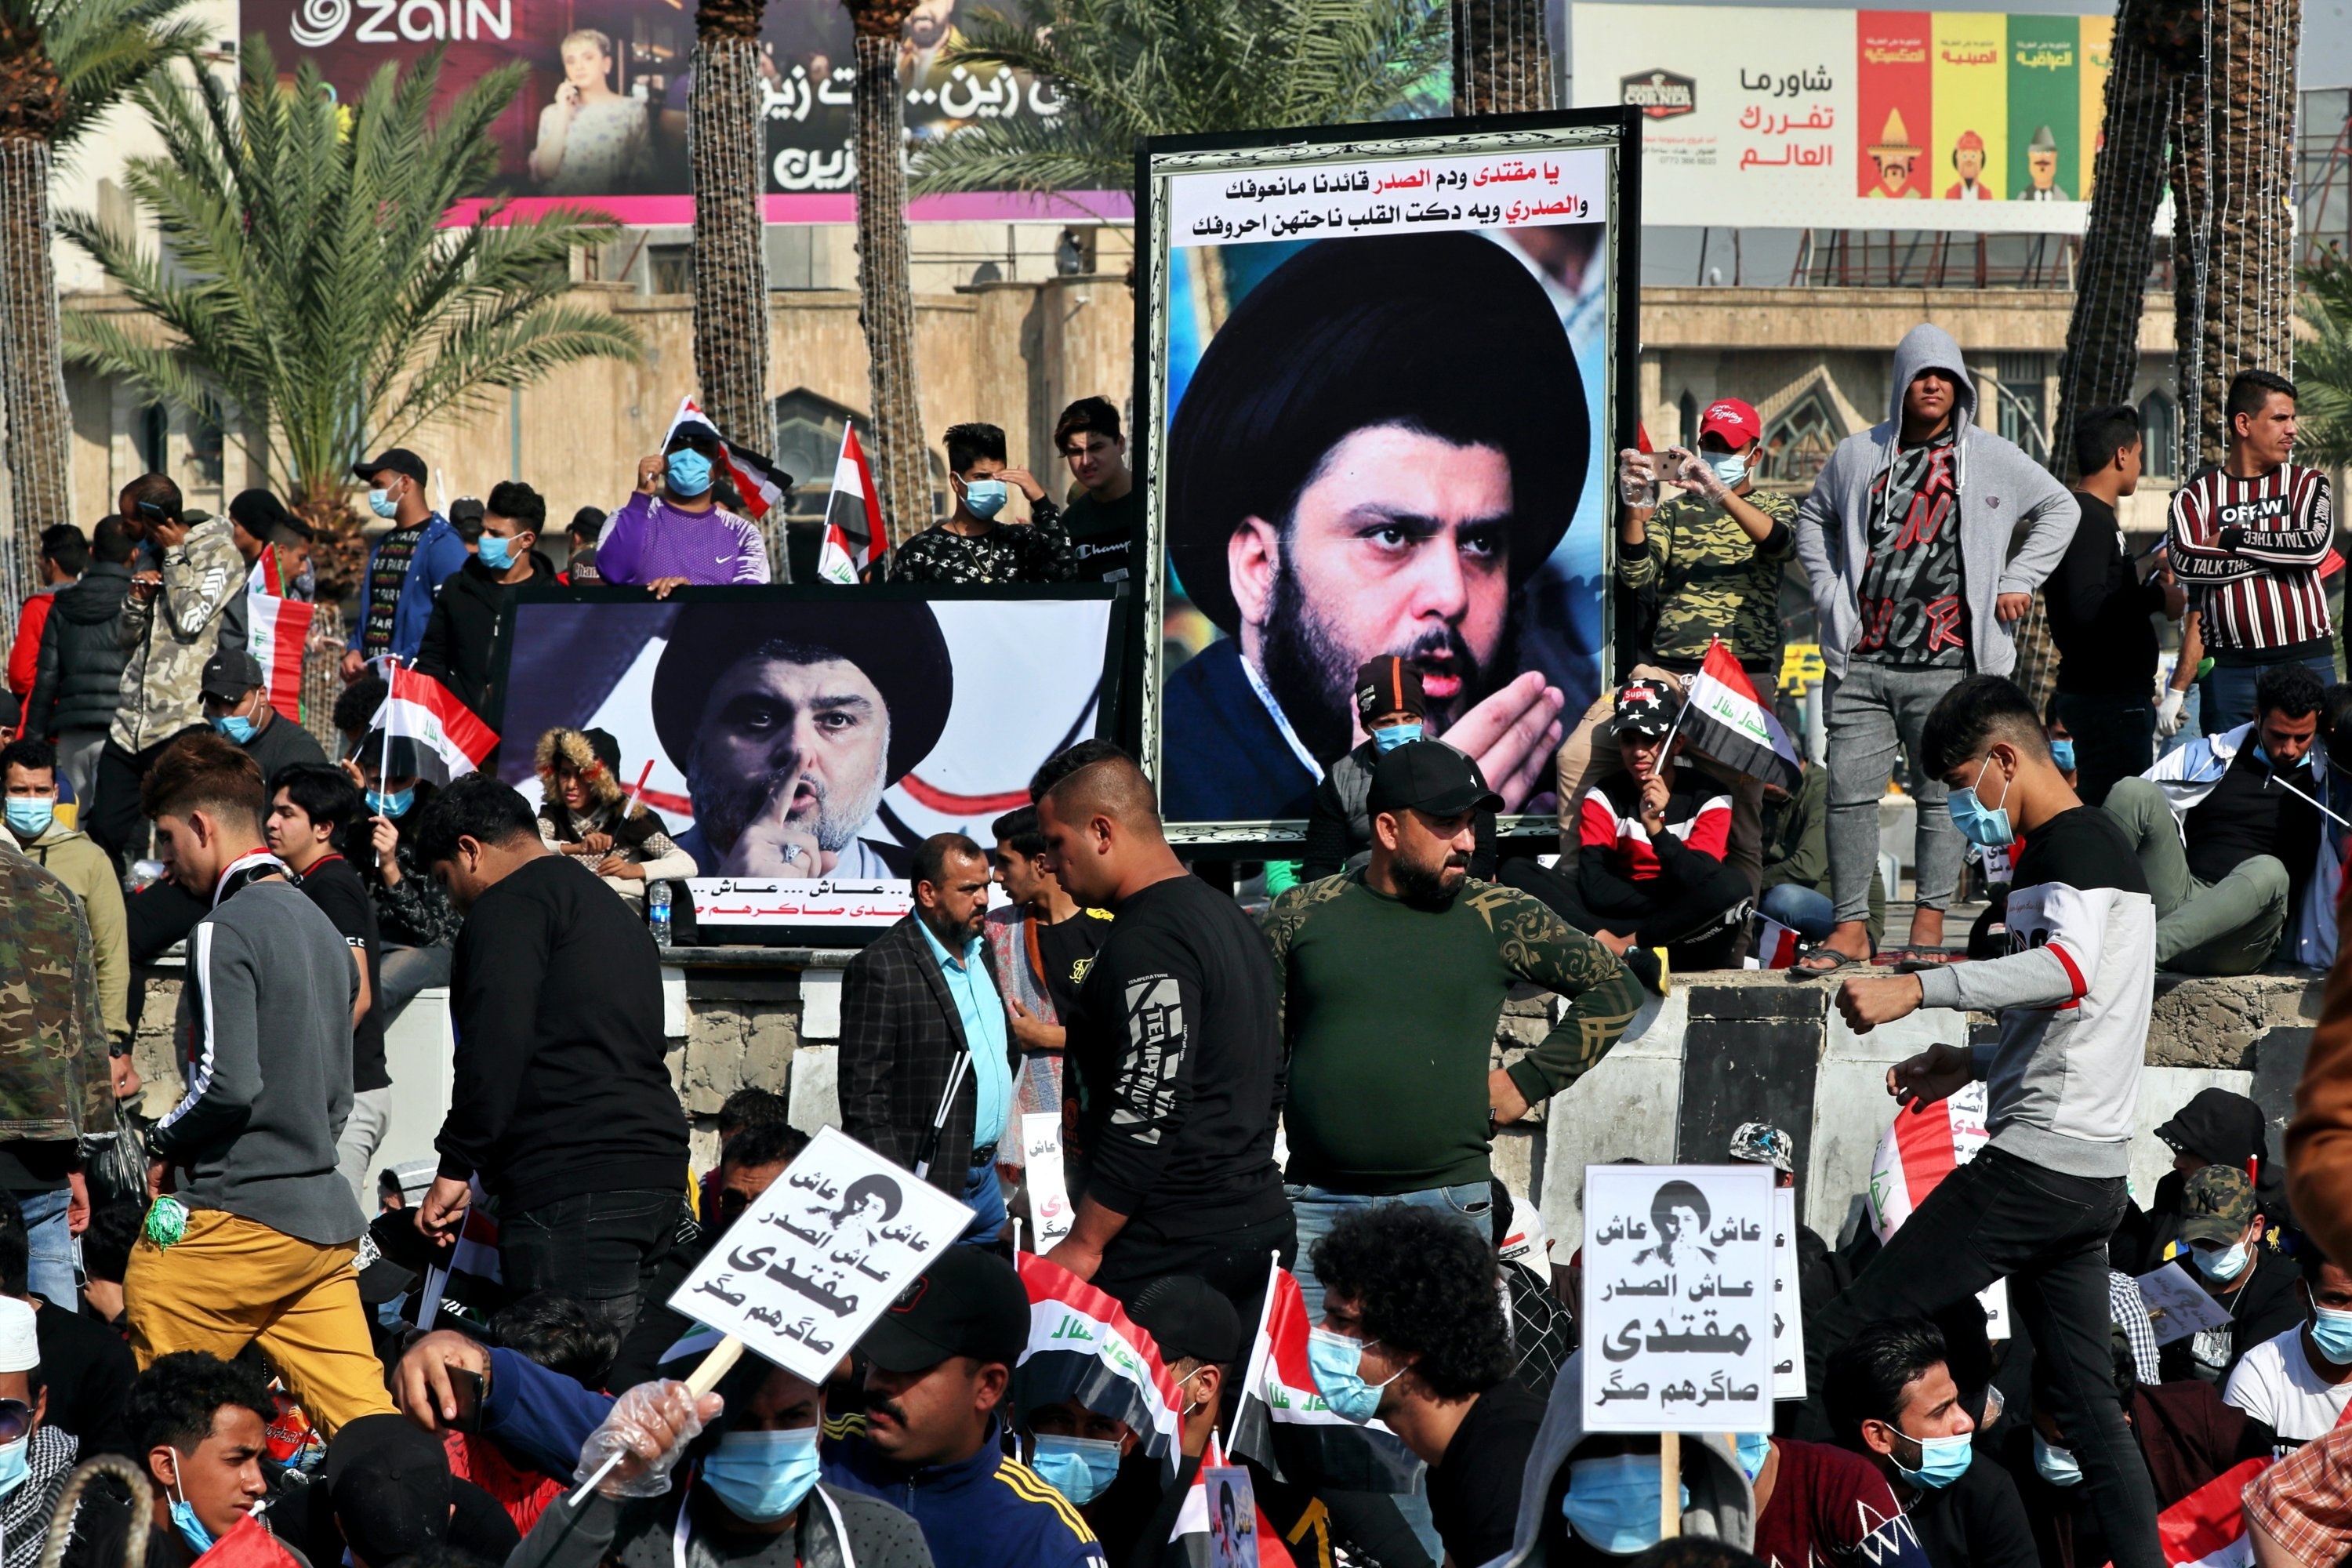 Followers of Shiite cleric Muqtada al-Sadr, in the posters, gather in Tahrir Square, Baghdad, Iraq, Friday, Nov. 27, 2020. (AP)